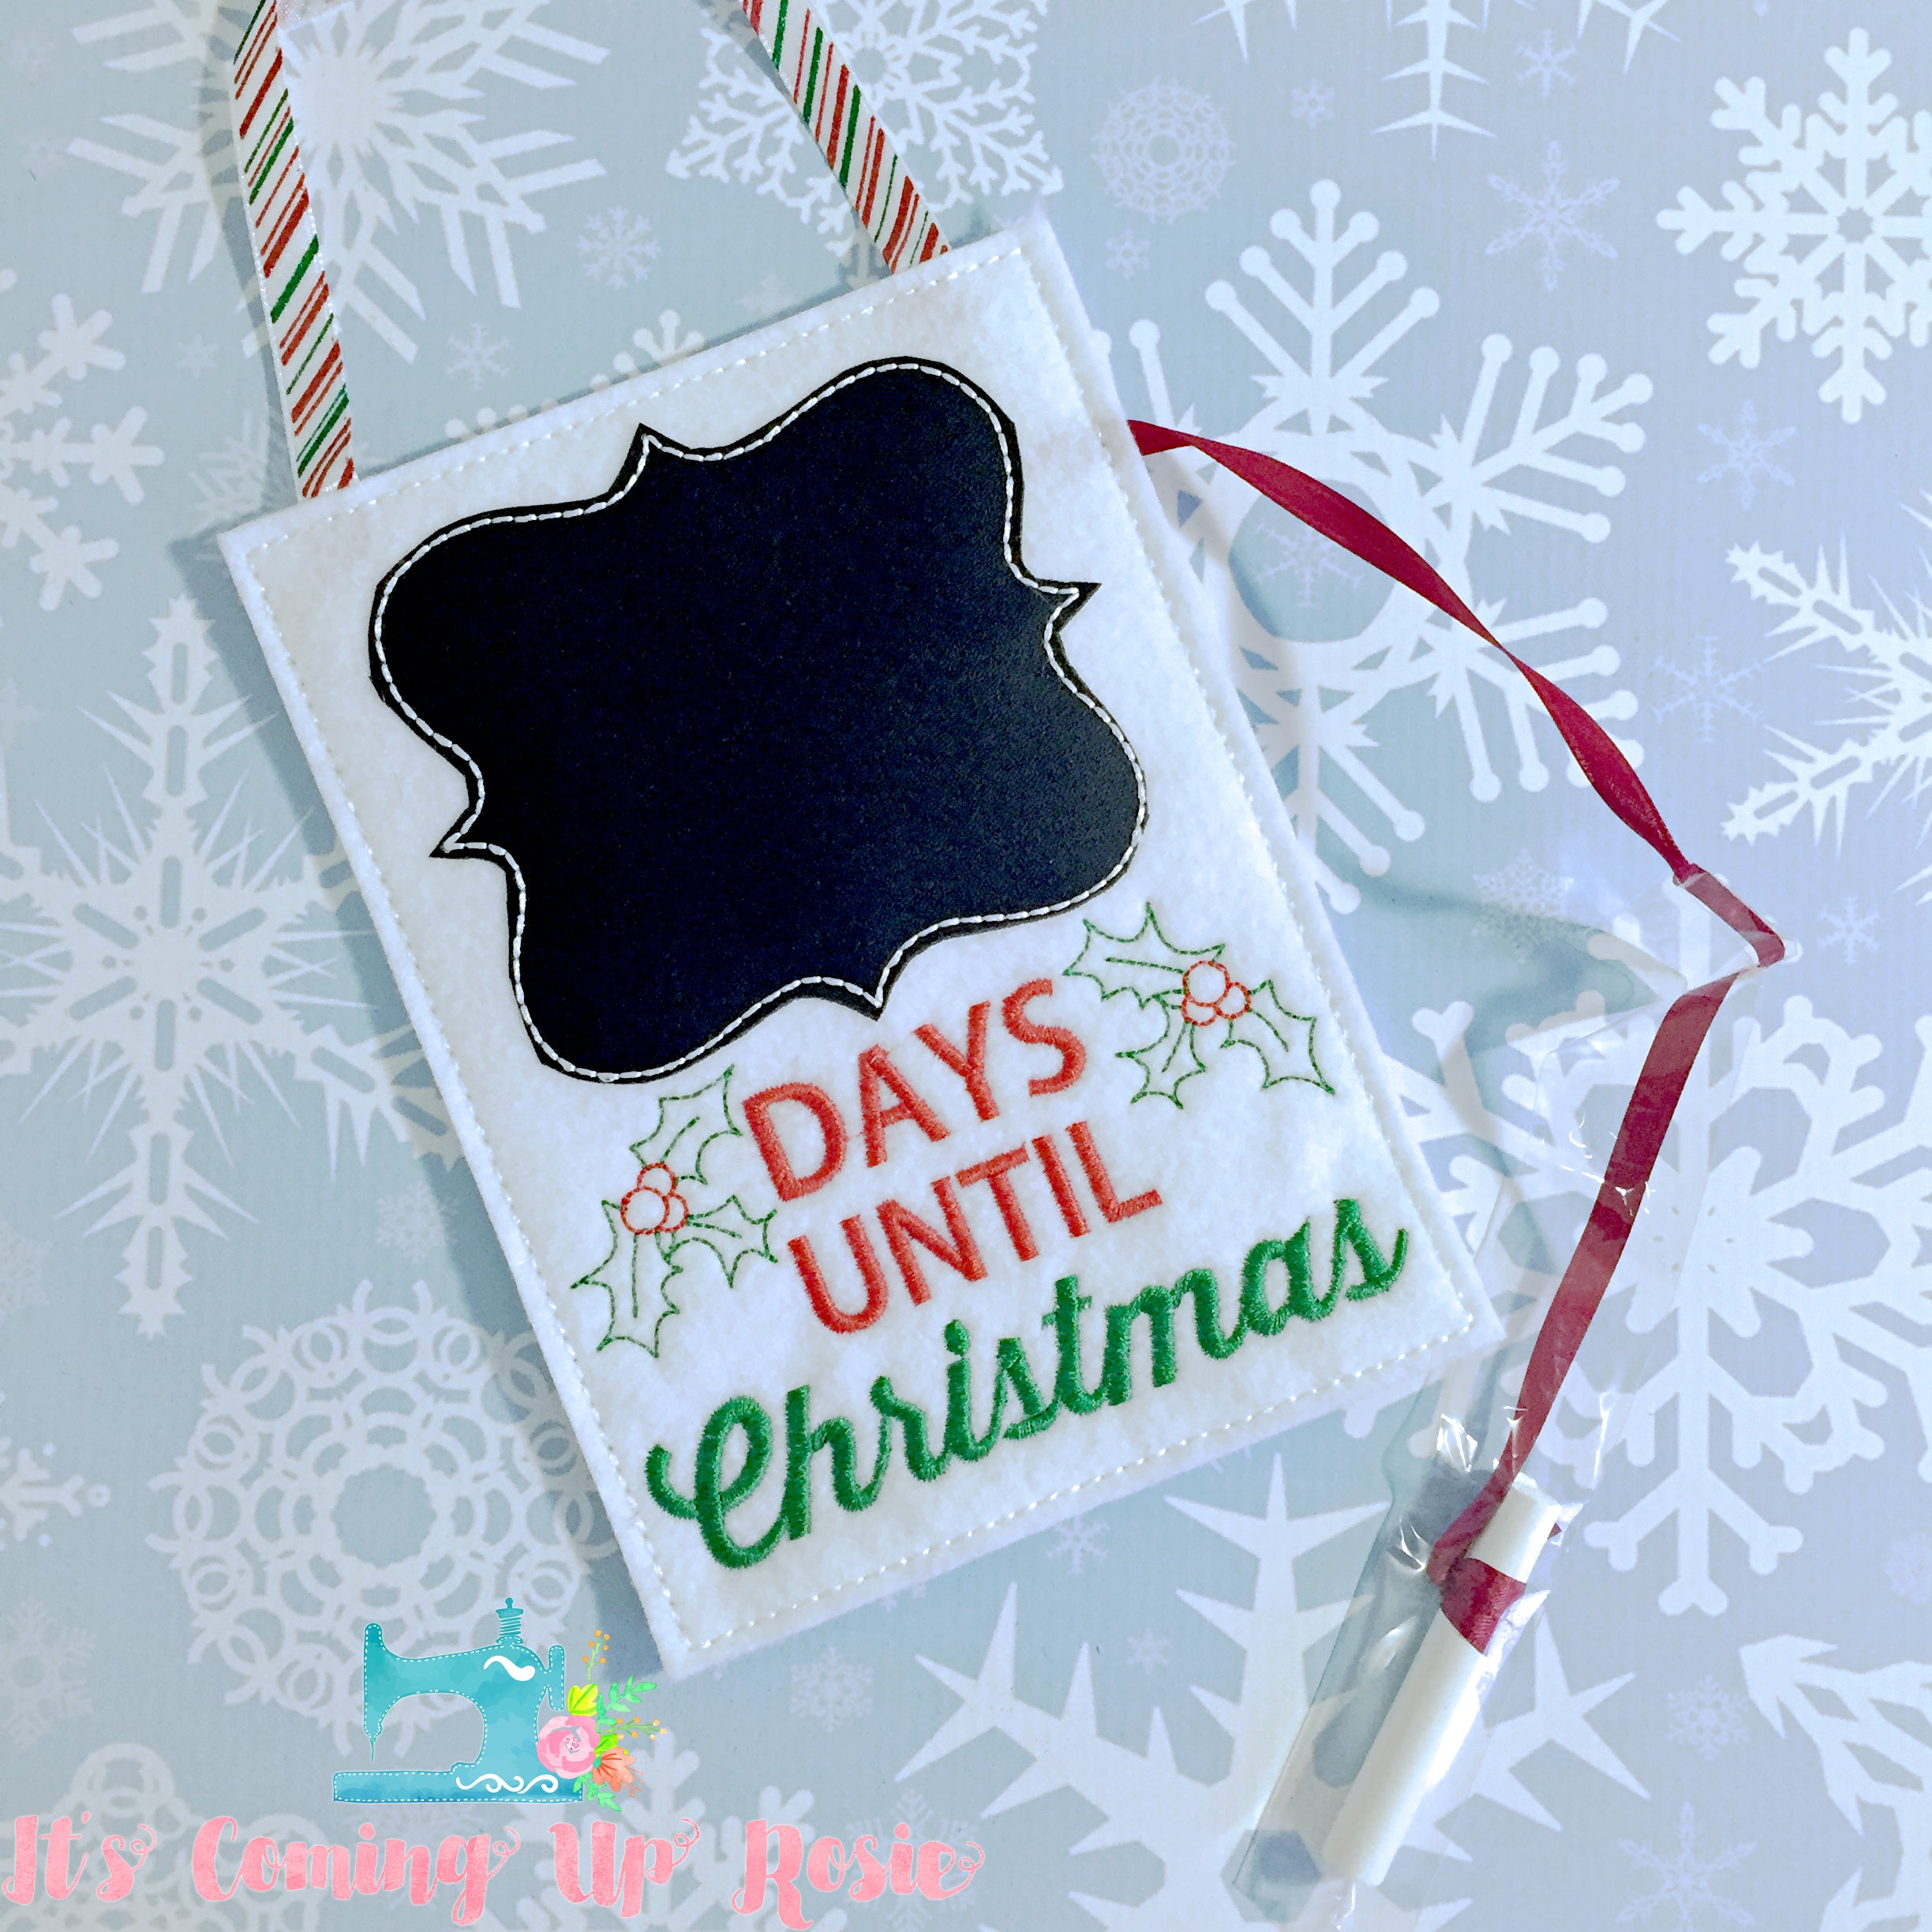 Days Till Christmas Chalkboard.Days Until Christmas Chalkboard Countdown